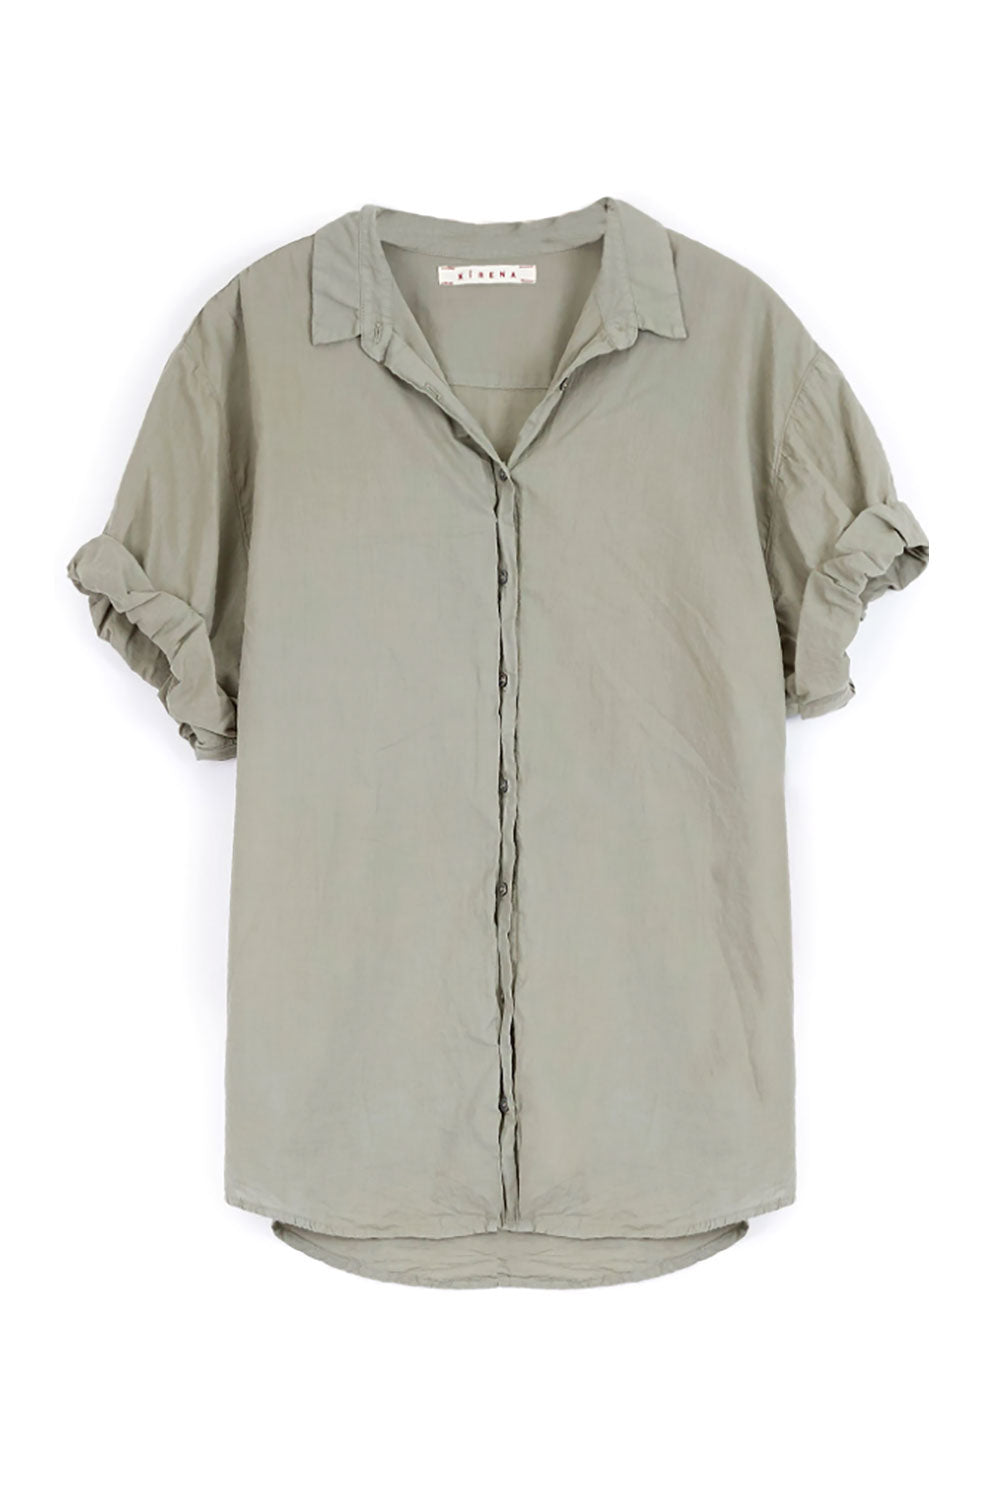 Channing Sands Shirt